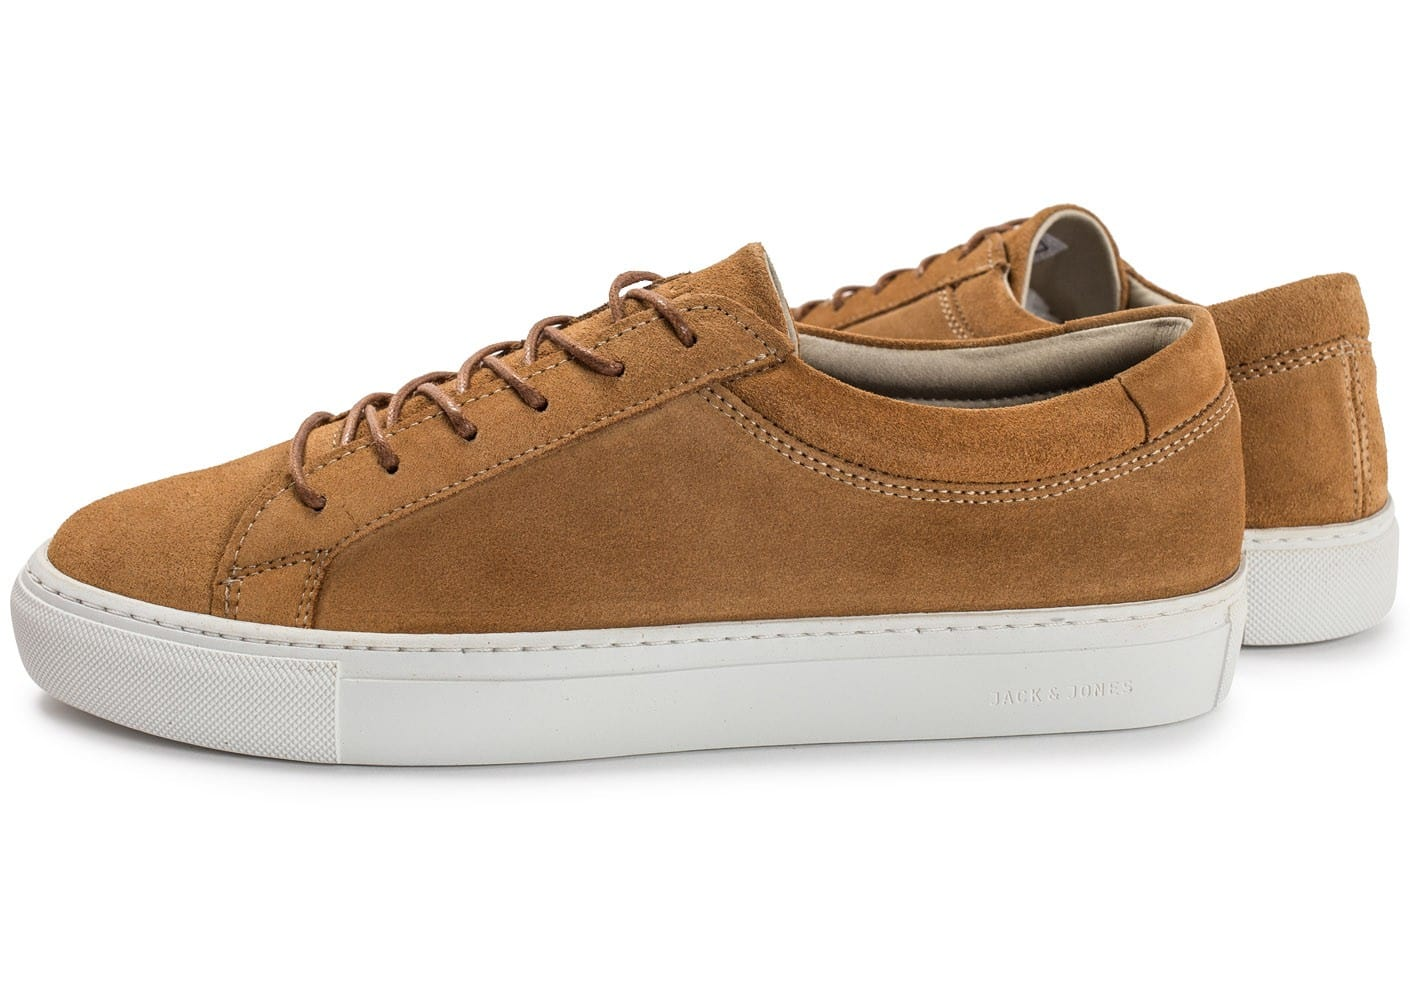 jack jones sneakers jfw galaxy camel chaussures homme chausport. Black Bedroom Furniture Sets. Home Design Ideas